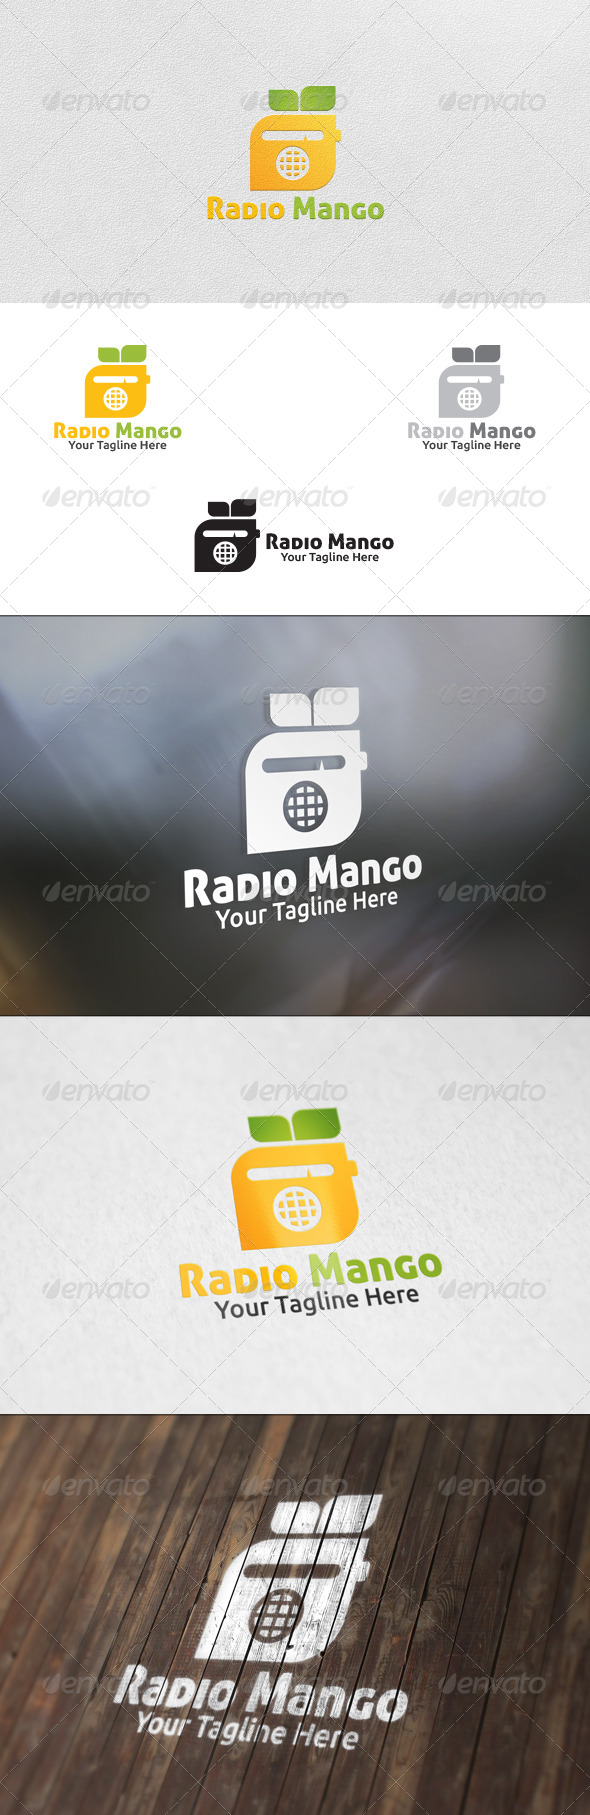 GraphicRiver Radio Mango Logo Template 5908214